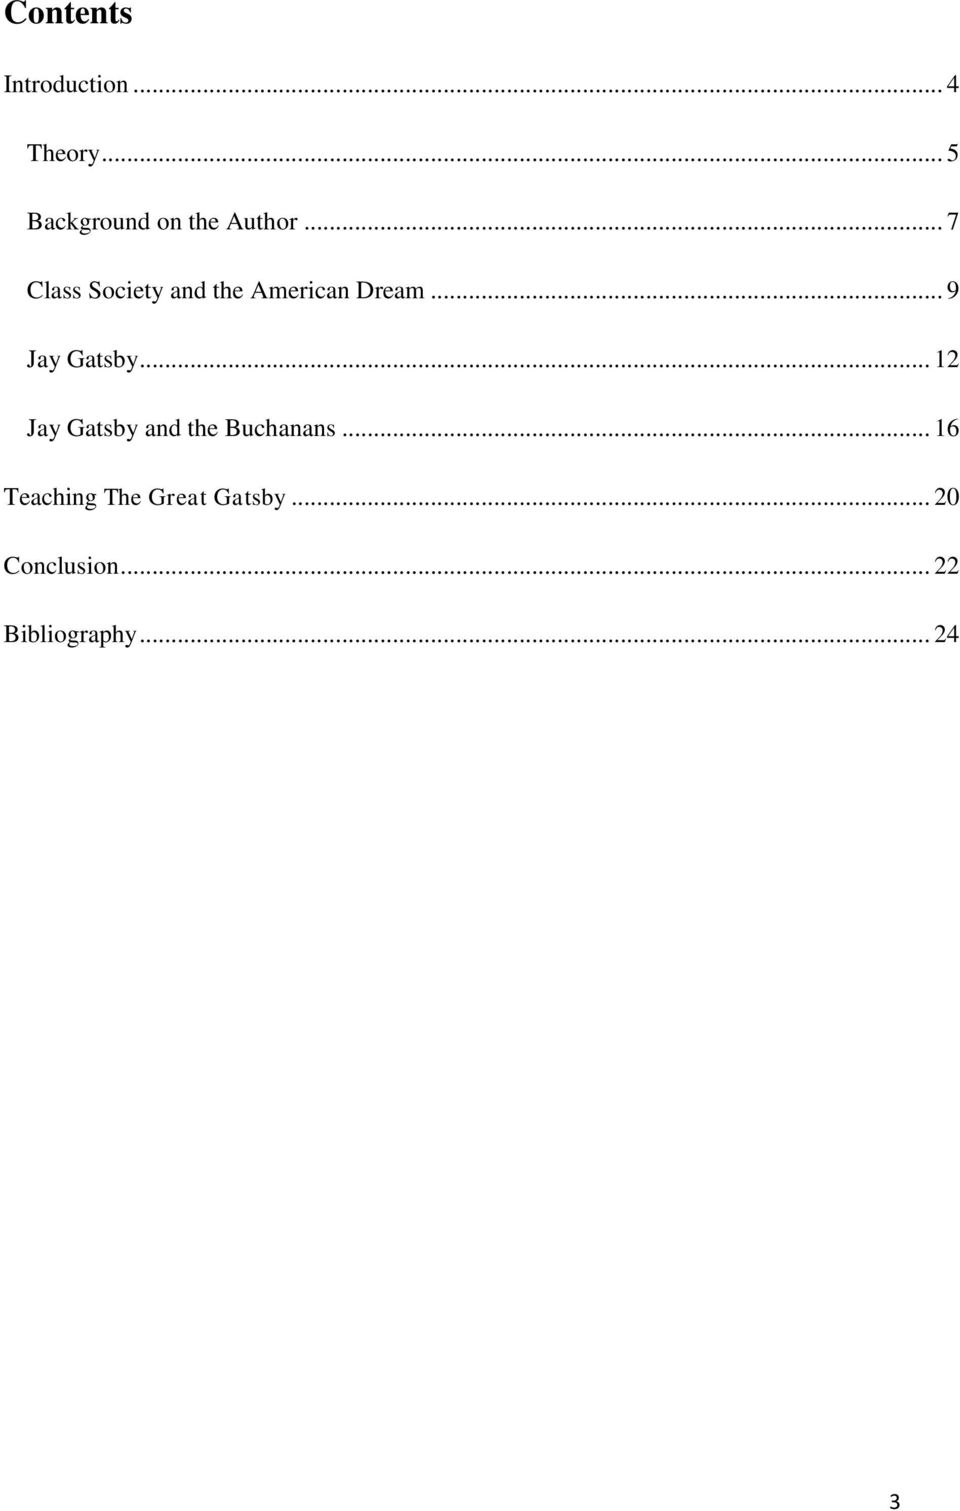 social class and status in fitzgerald s the great gatsby pdf